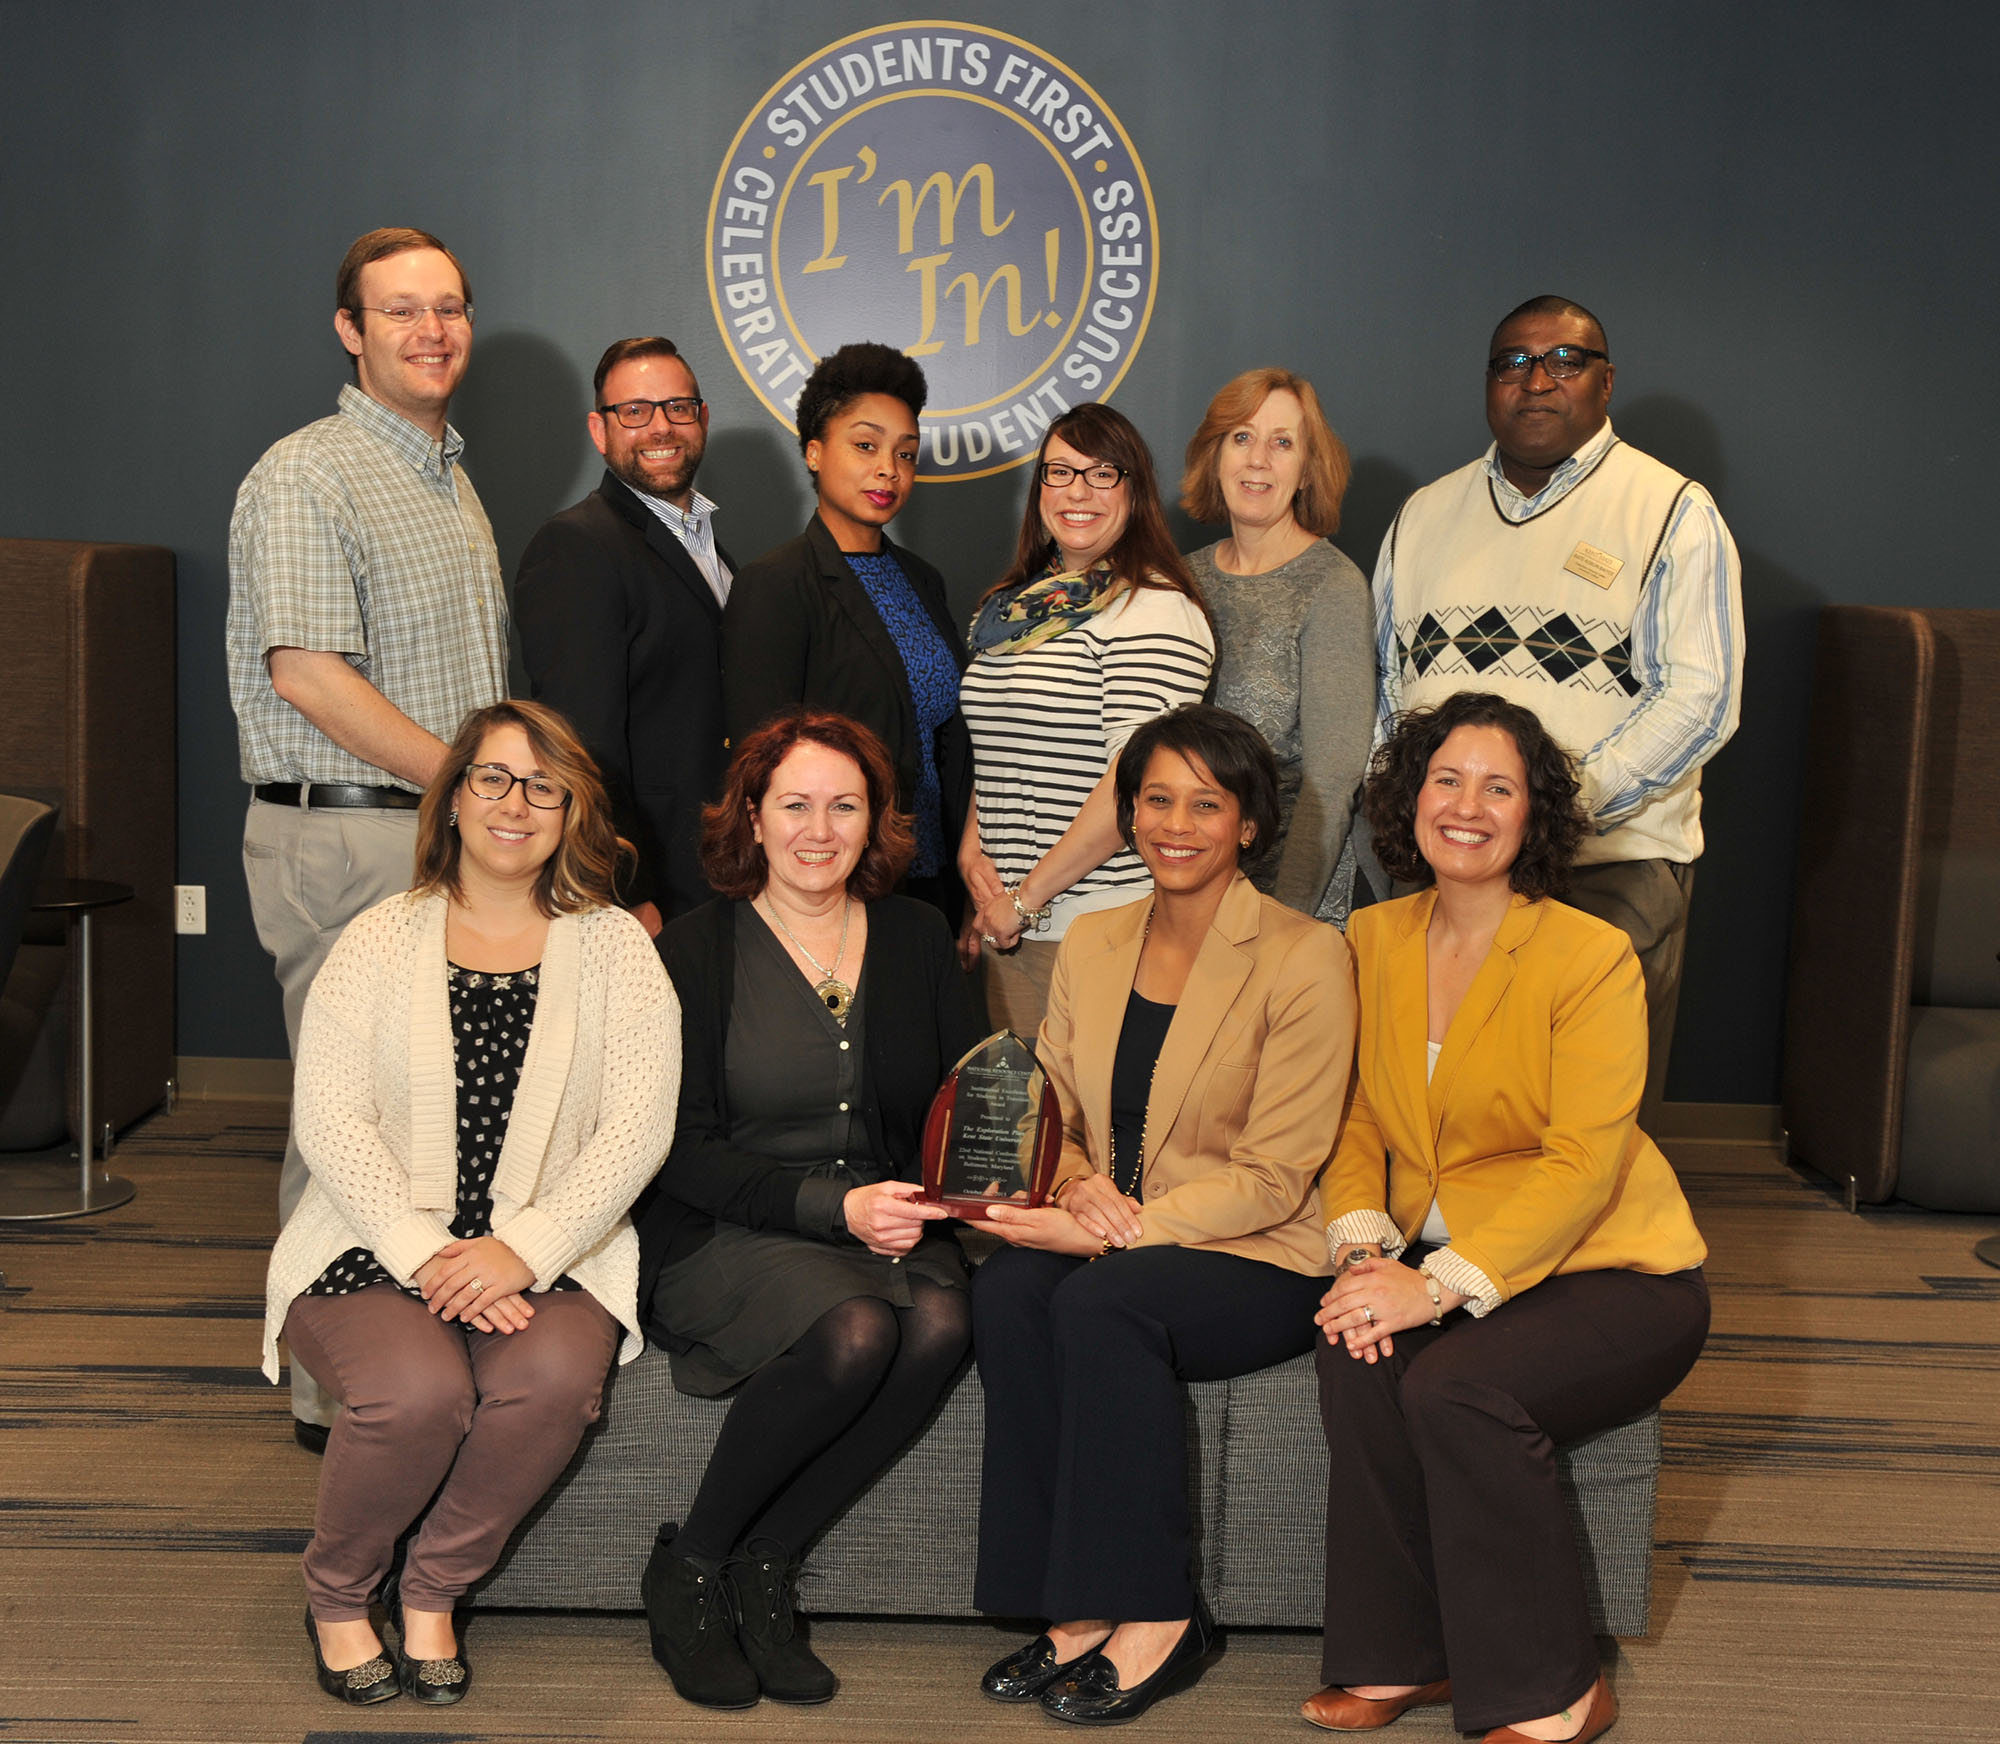 Institutional Excellence for Students in Transition Award Image